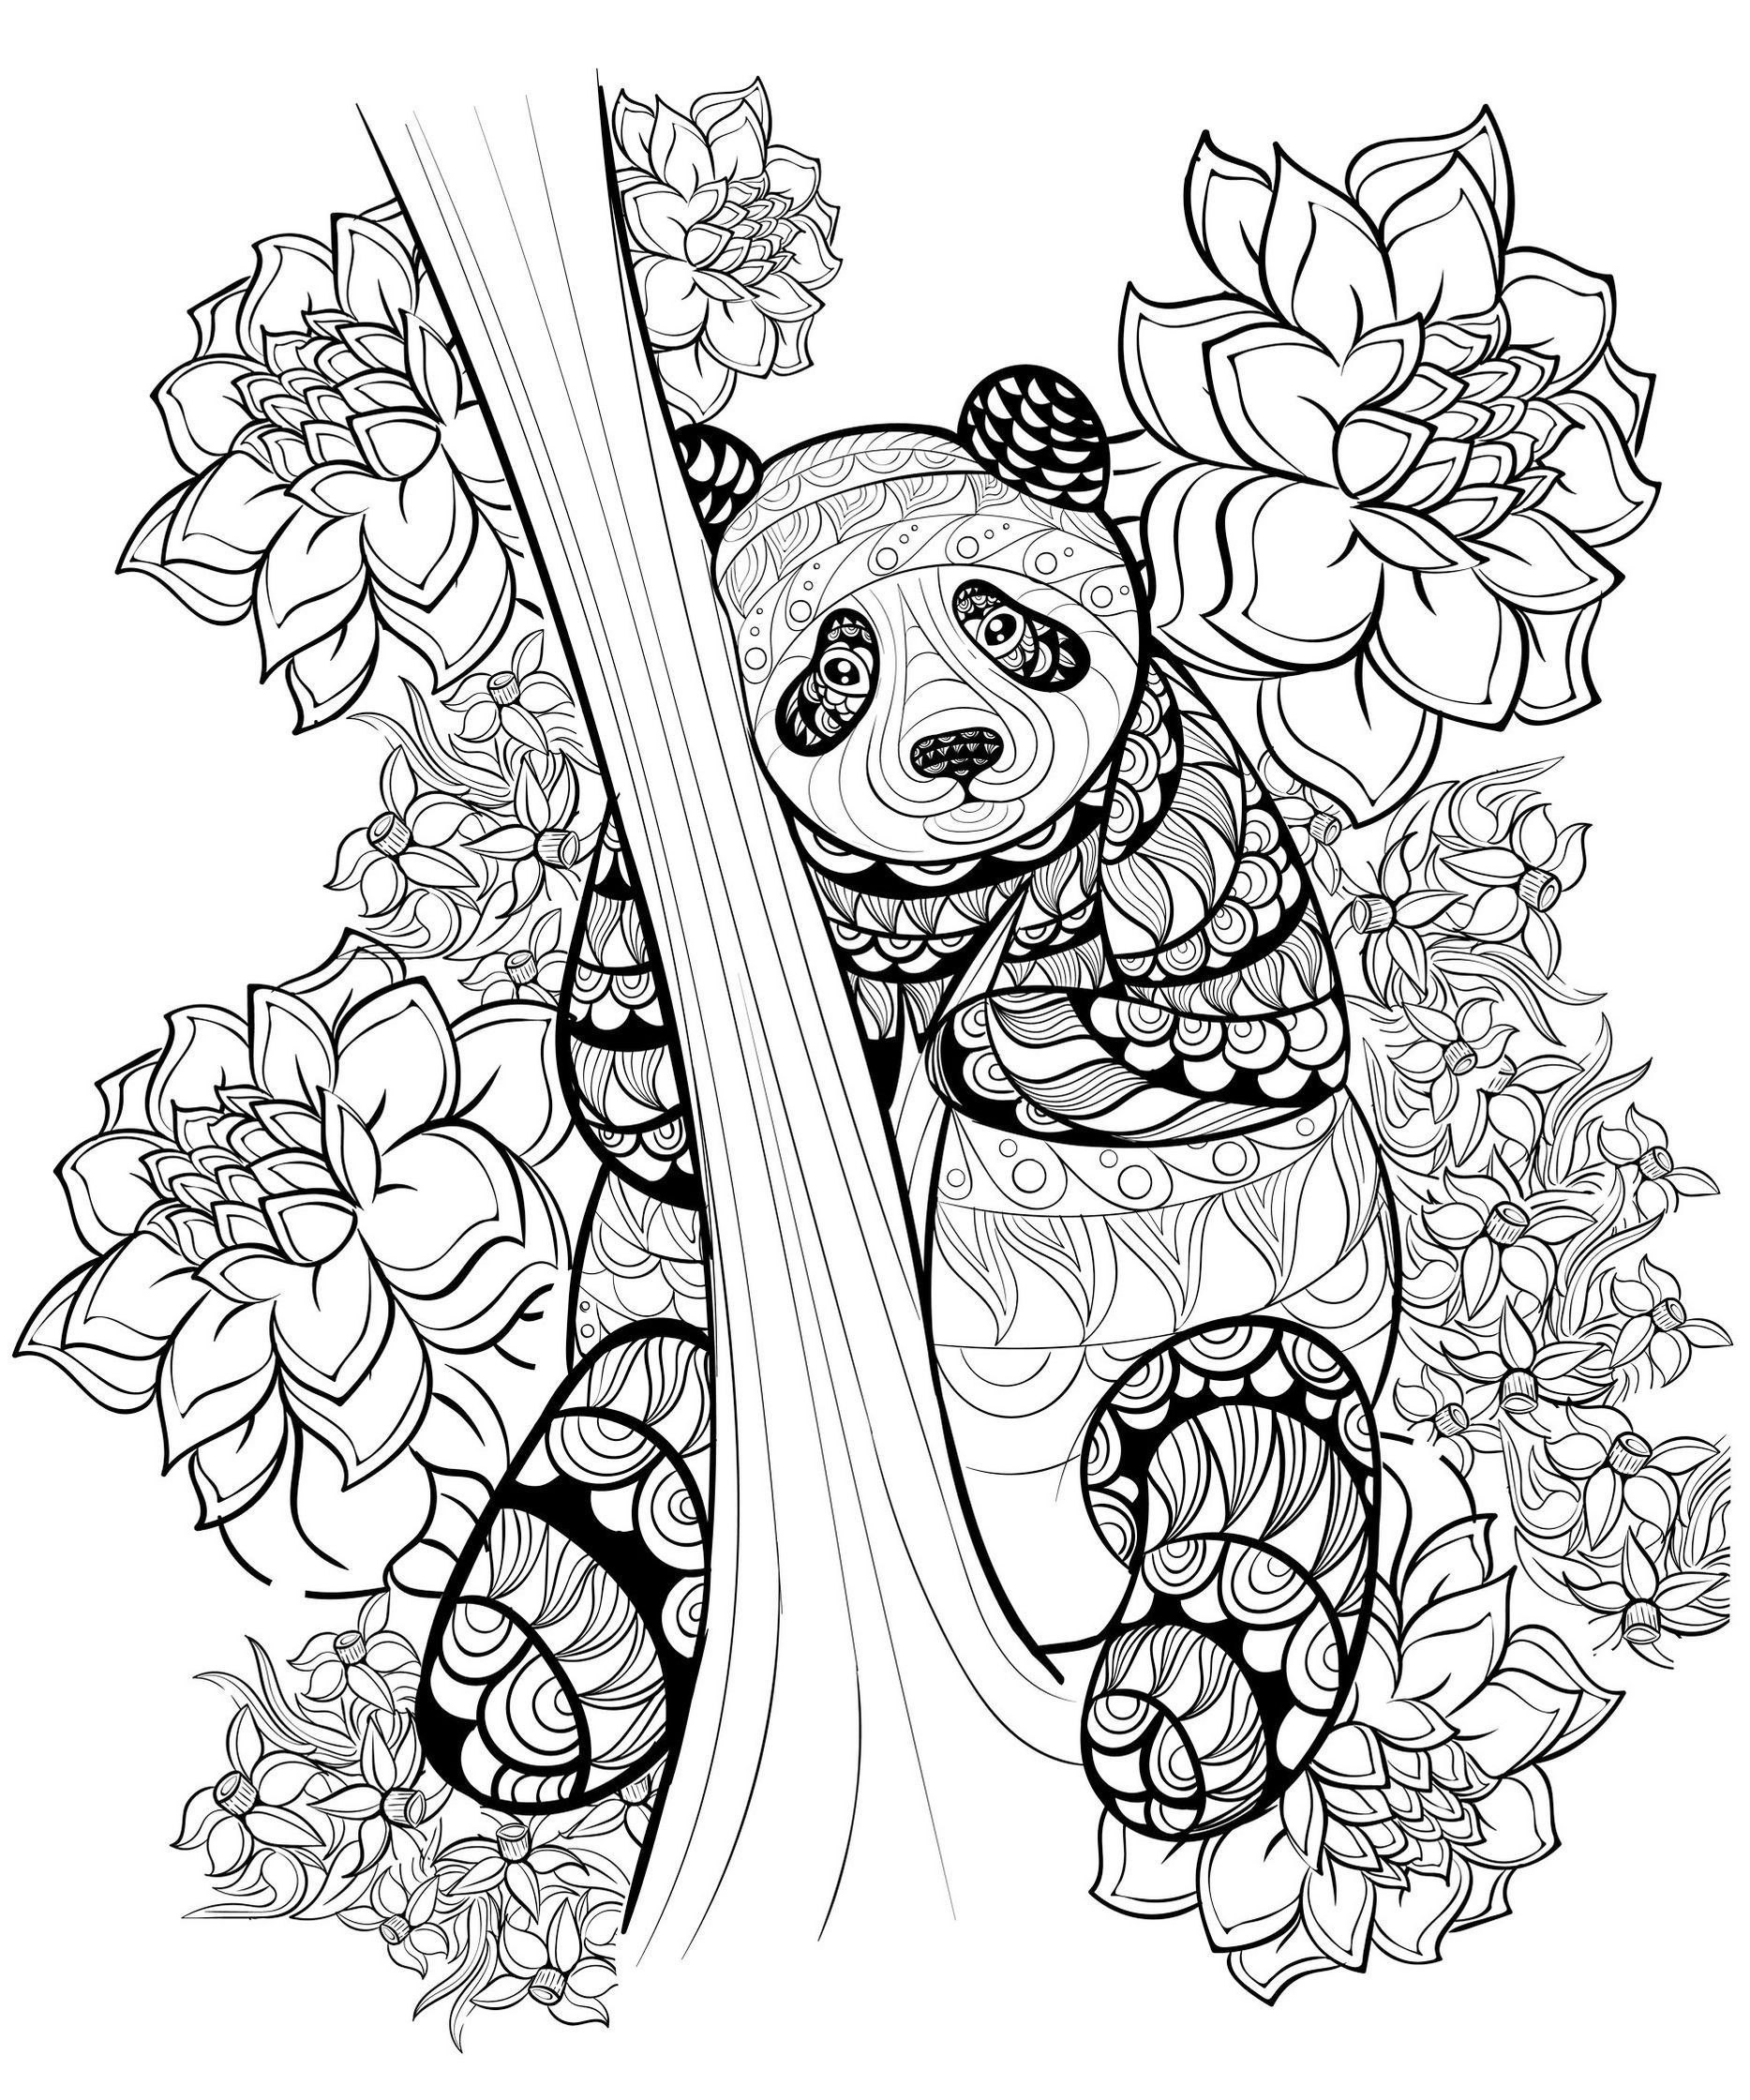 horse coloring pages printable Download-Best Printable Coloring Pages New Book Coloring Pages Lovely 68 Best Coloring Pages Horses 20-q